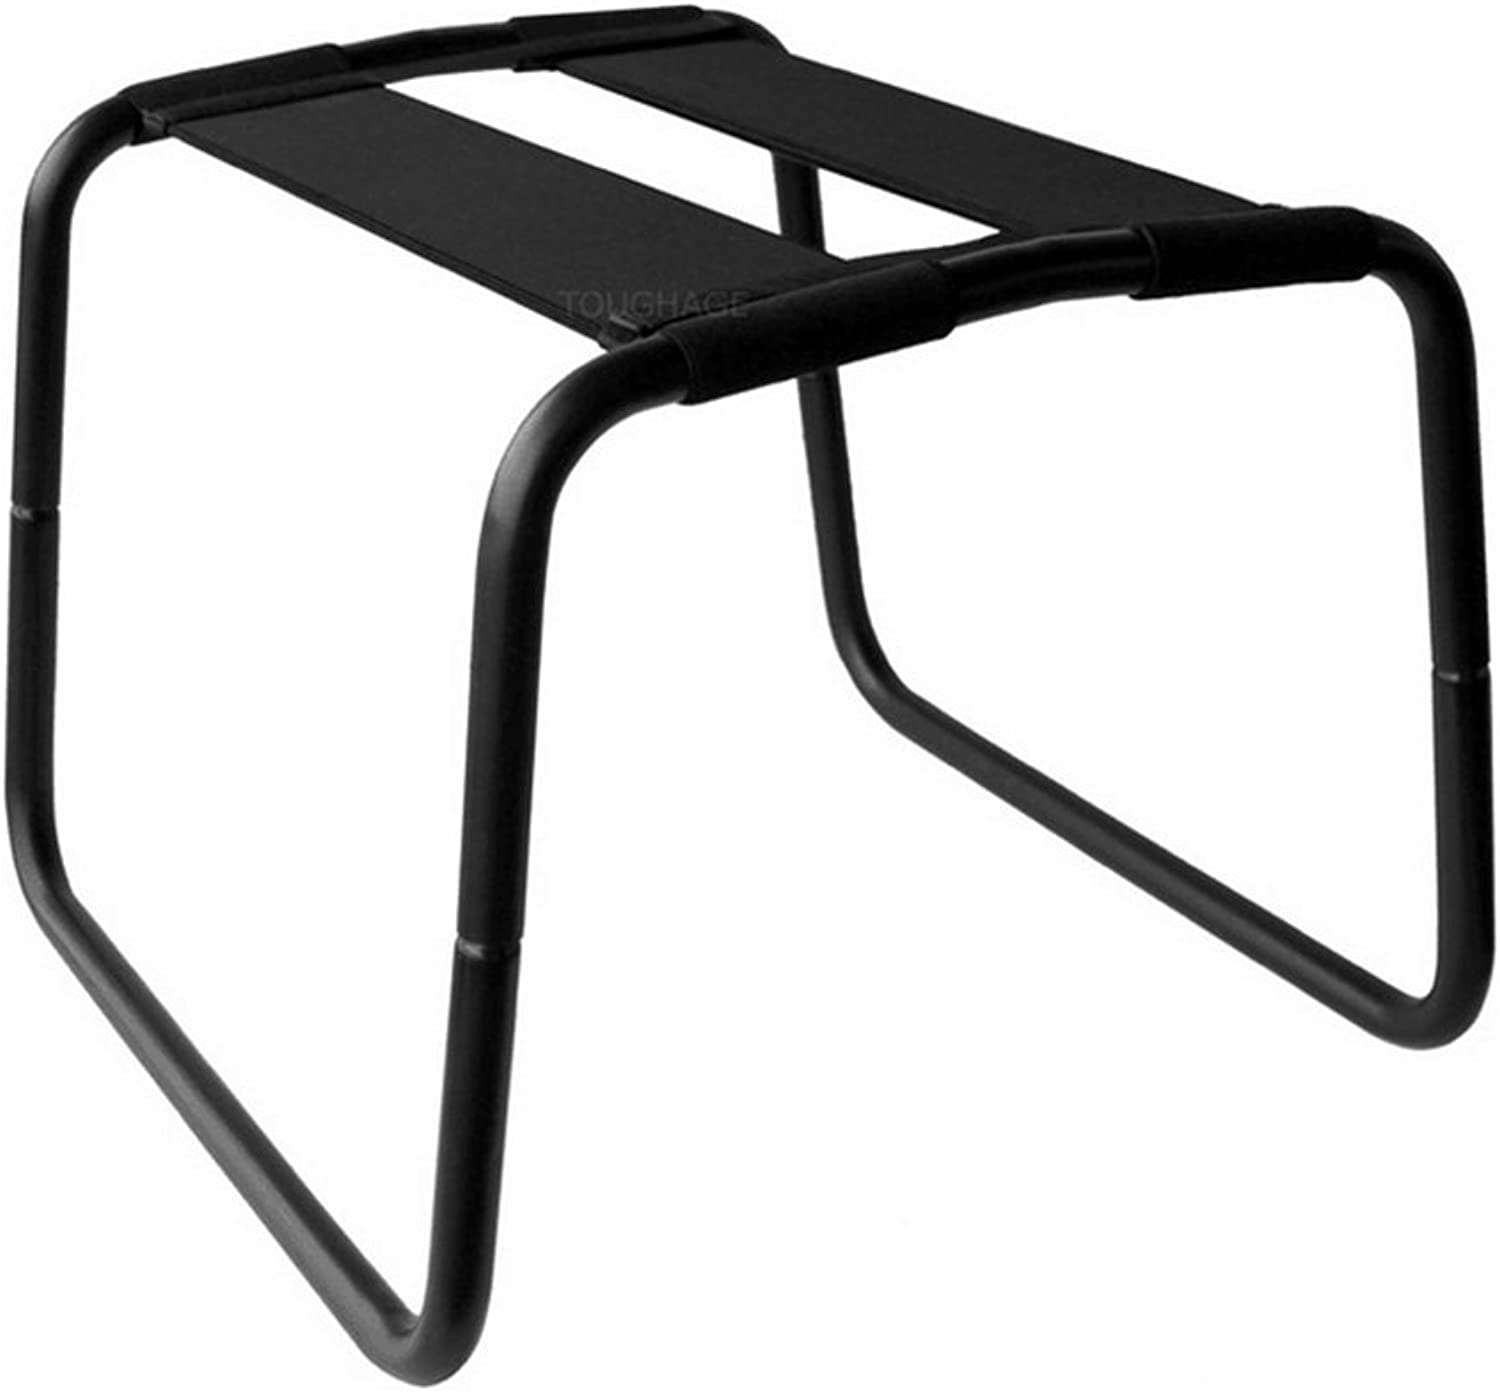 Multifunctional Elastic Chair for Couples (Black)